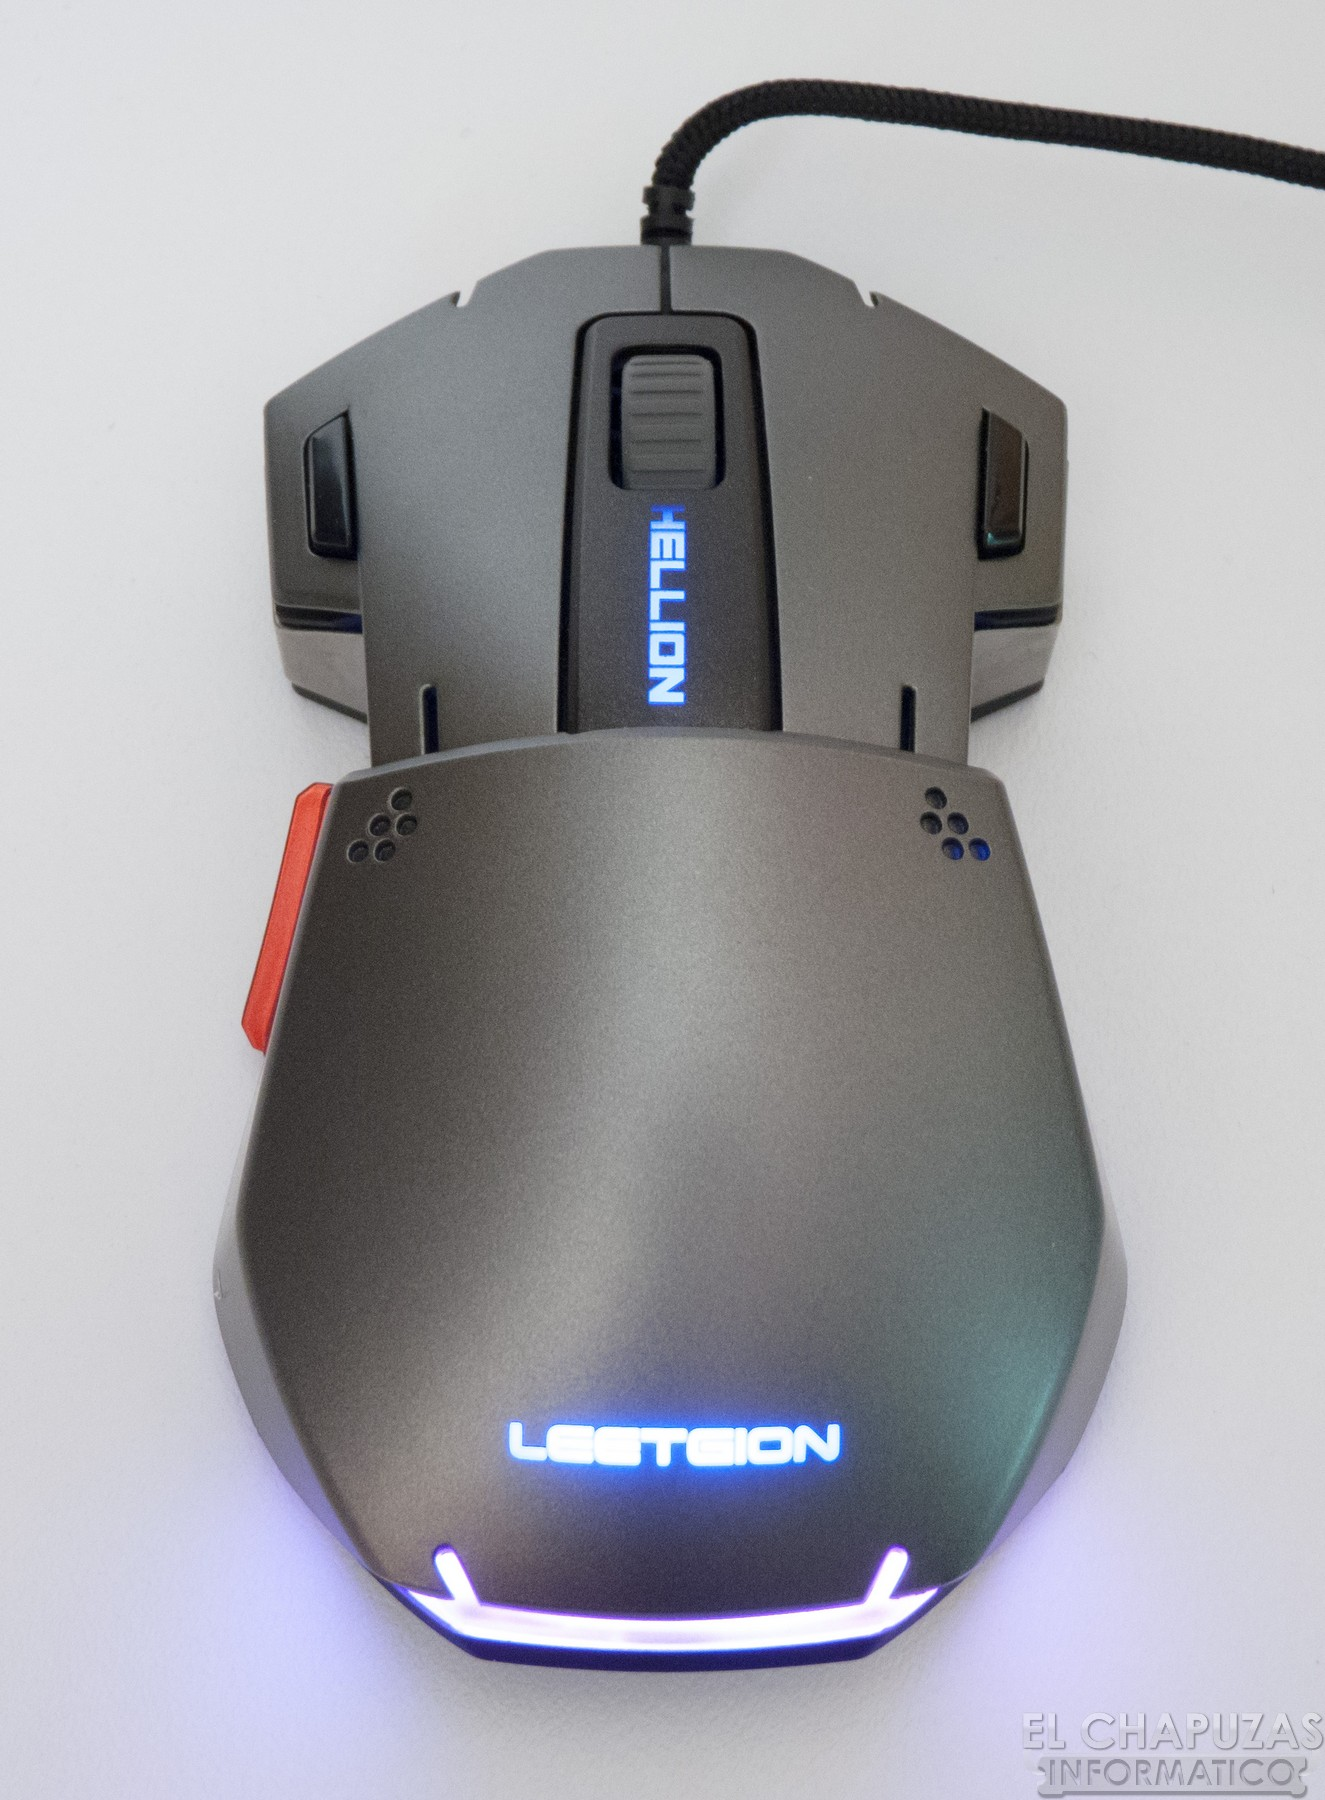 Thermalright Leetgion Hellion 18